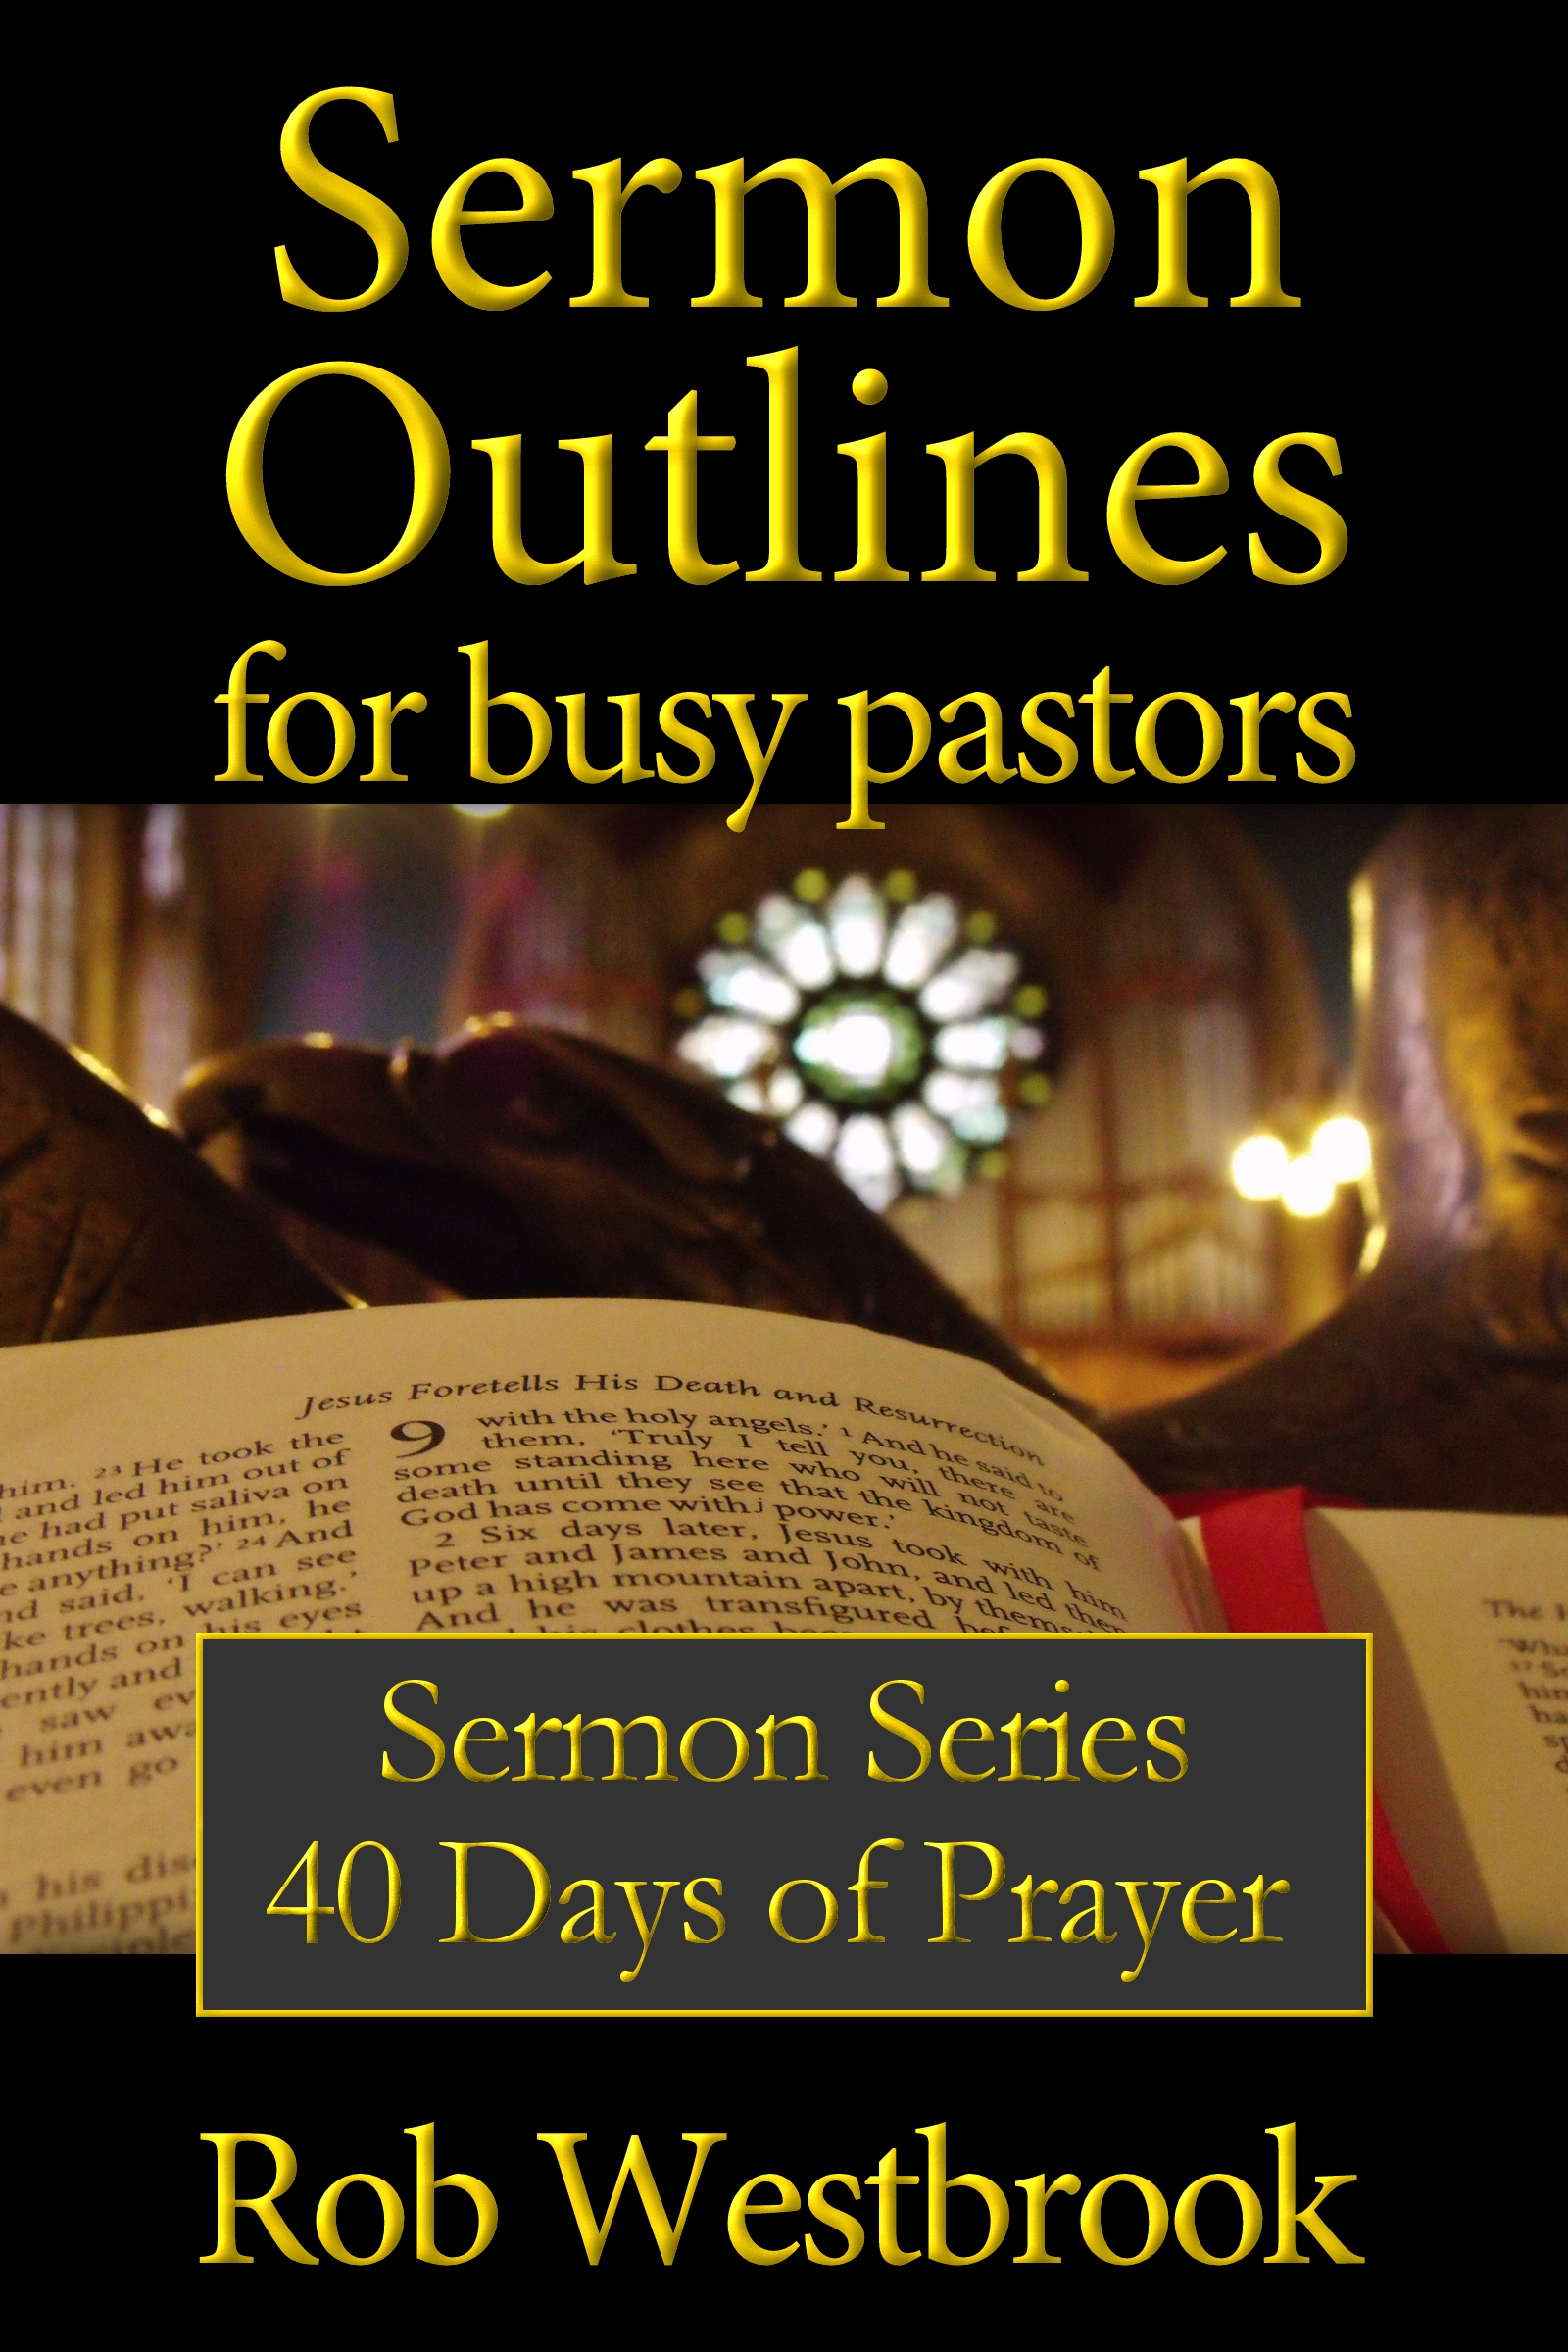 Sermon Outlines for Busy Pastors: 40 Days of Prayer Sermon Series, an Ebook  by Rob Westbrook